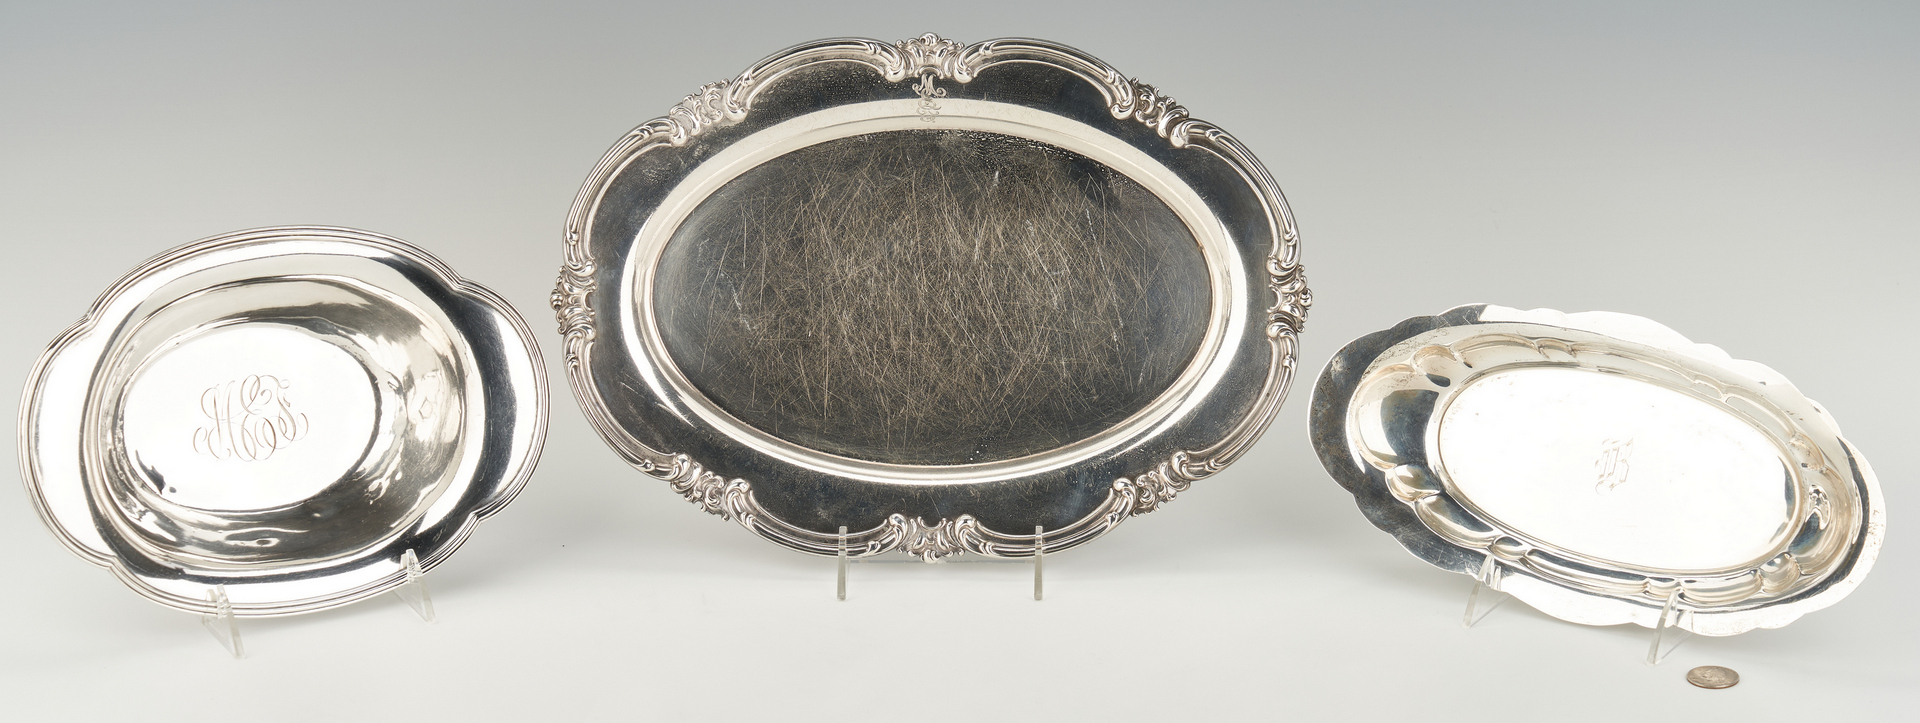 Lot 516: 3 Sterling Item: 2 trays and 1 oval bowl